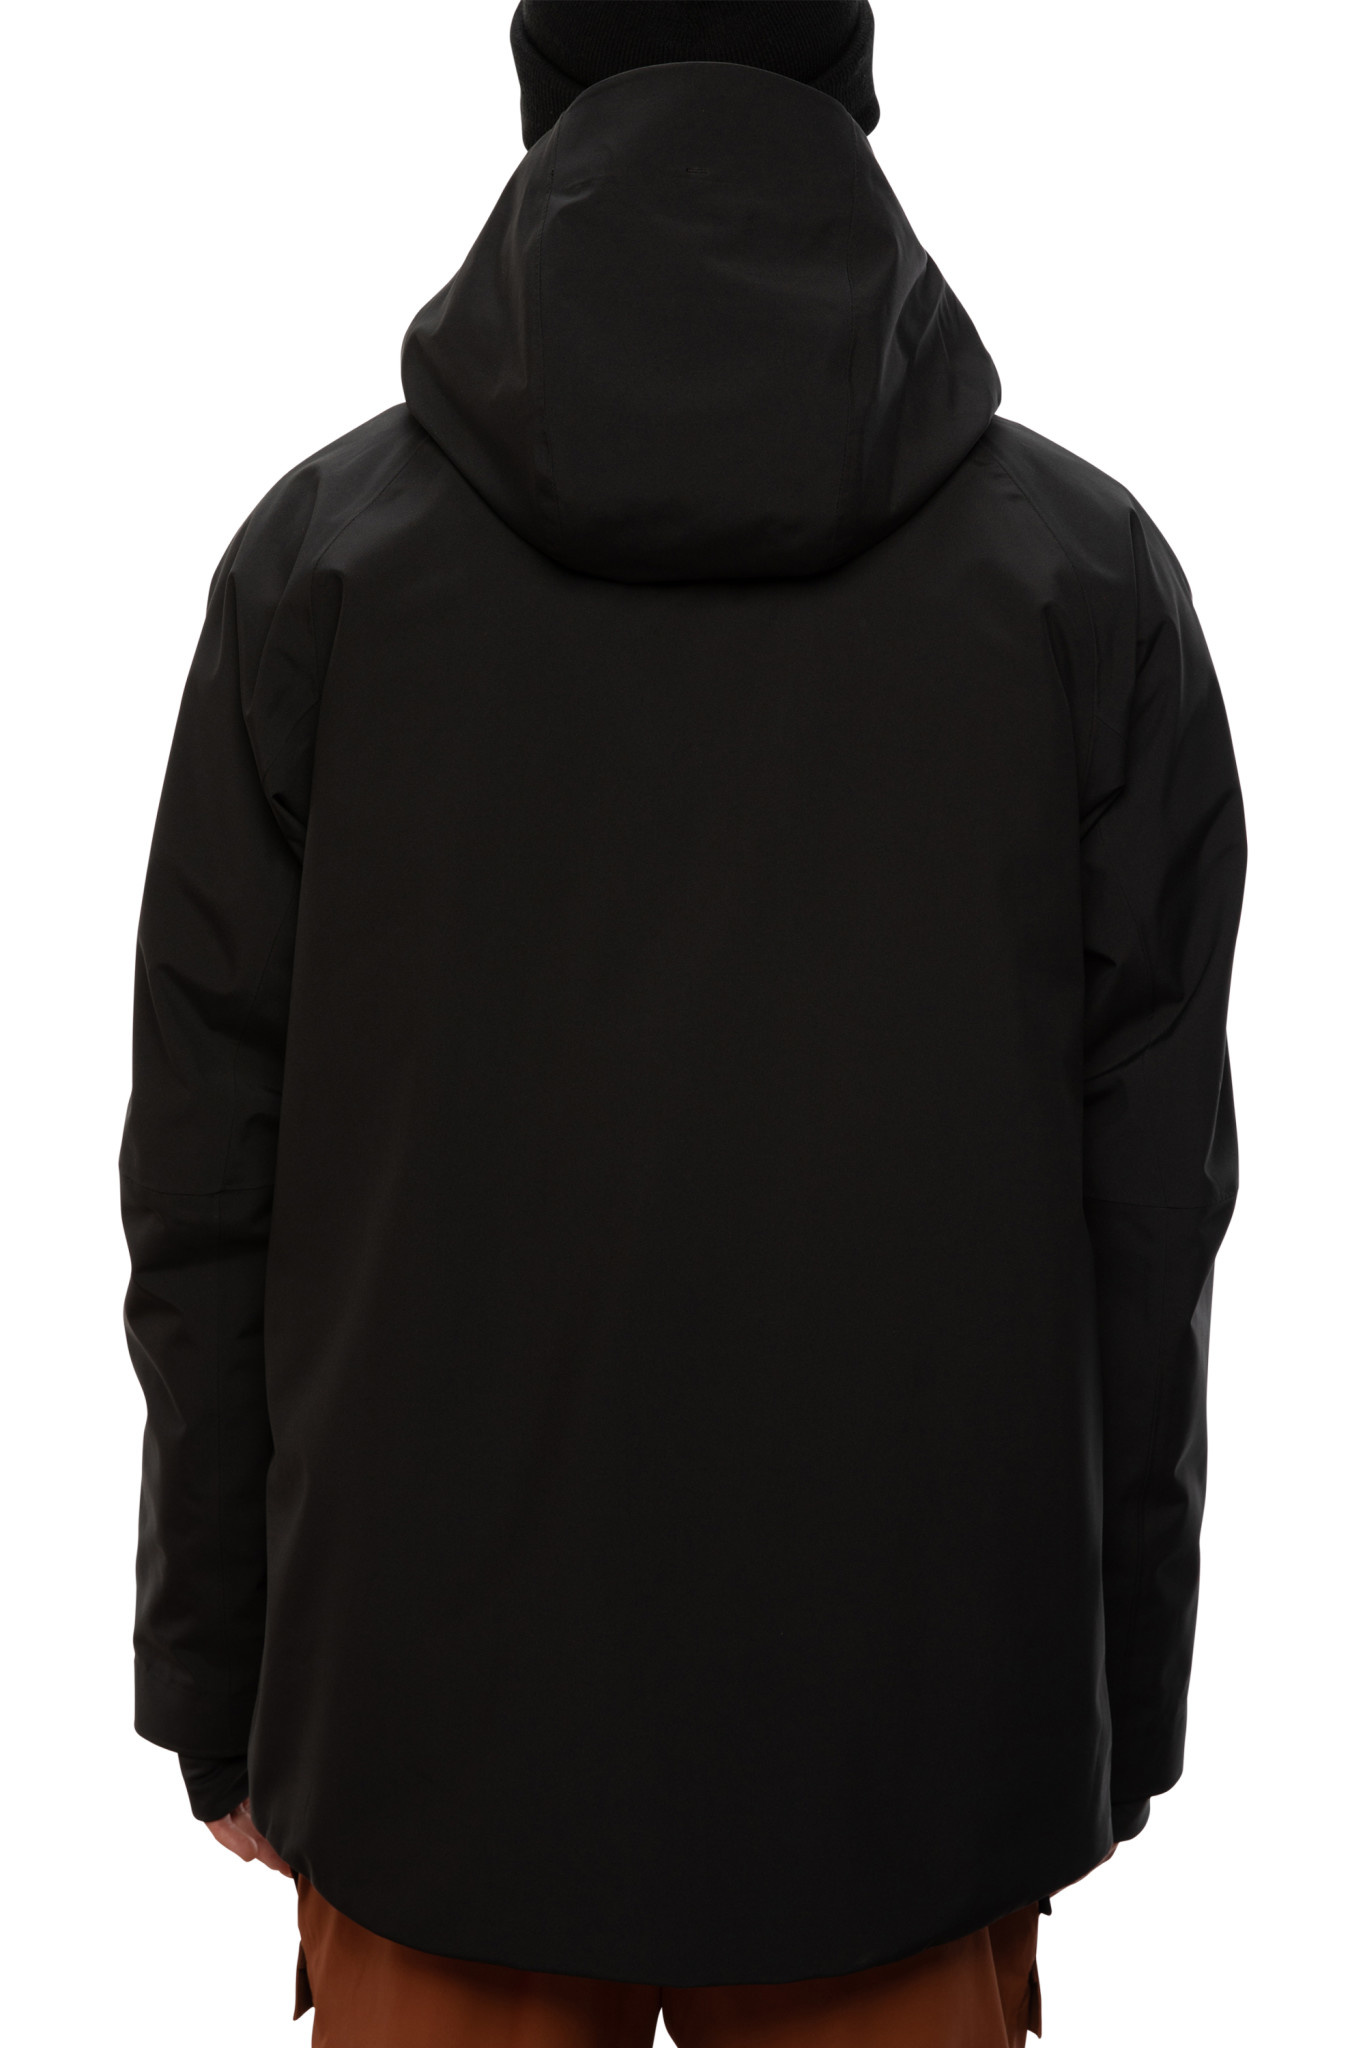 686 686 M's GLCR Hydra Thermagraph Jacket